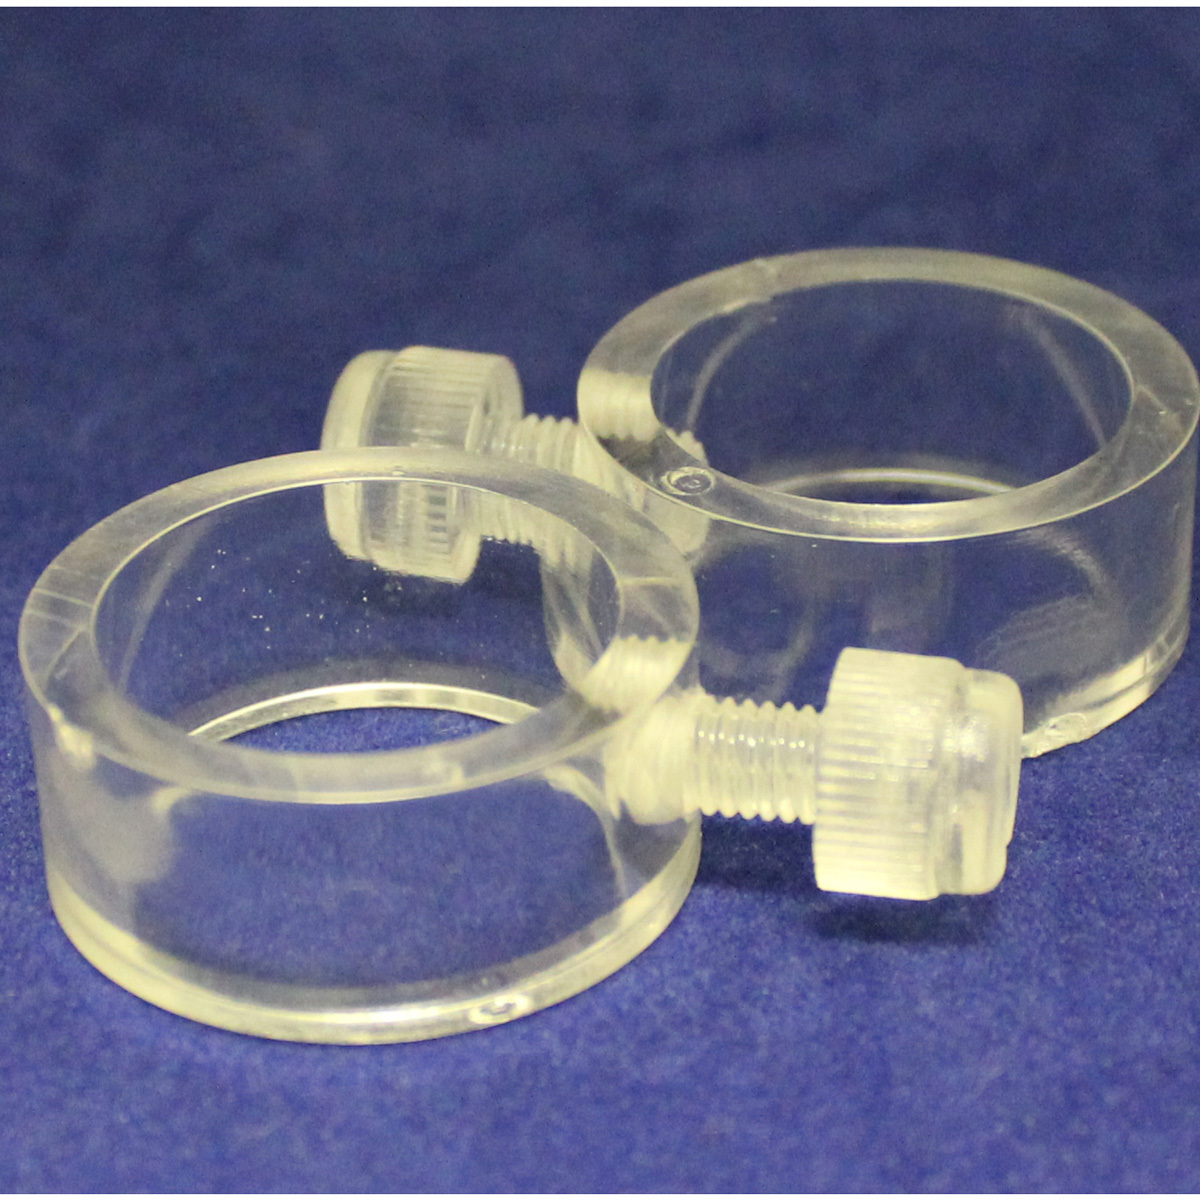 Rings clear 1inch